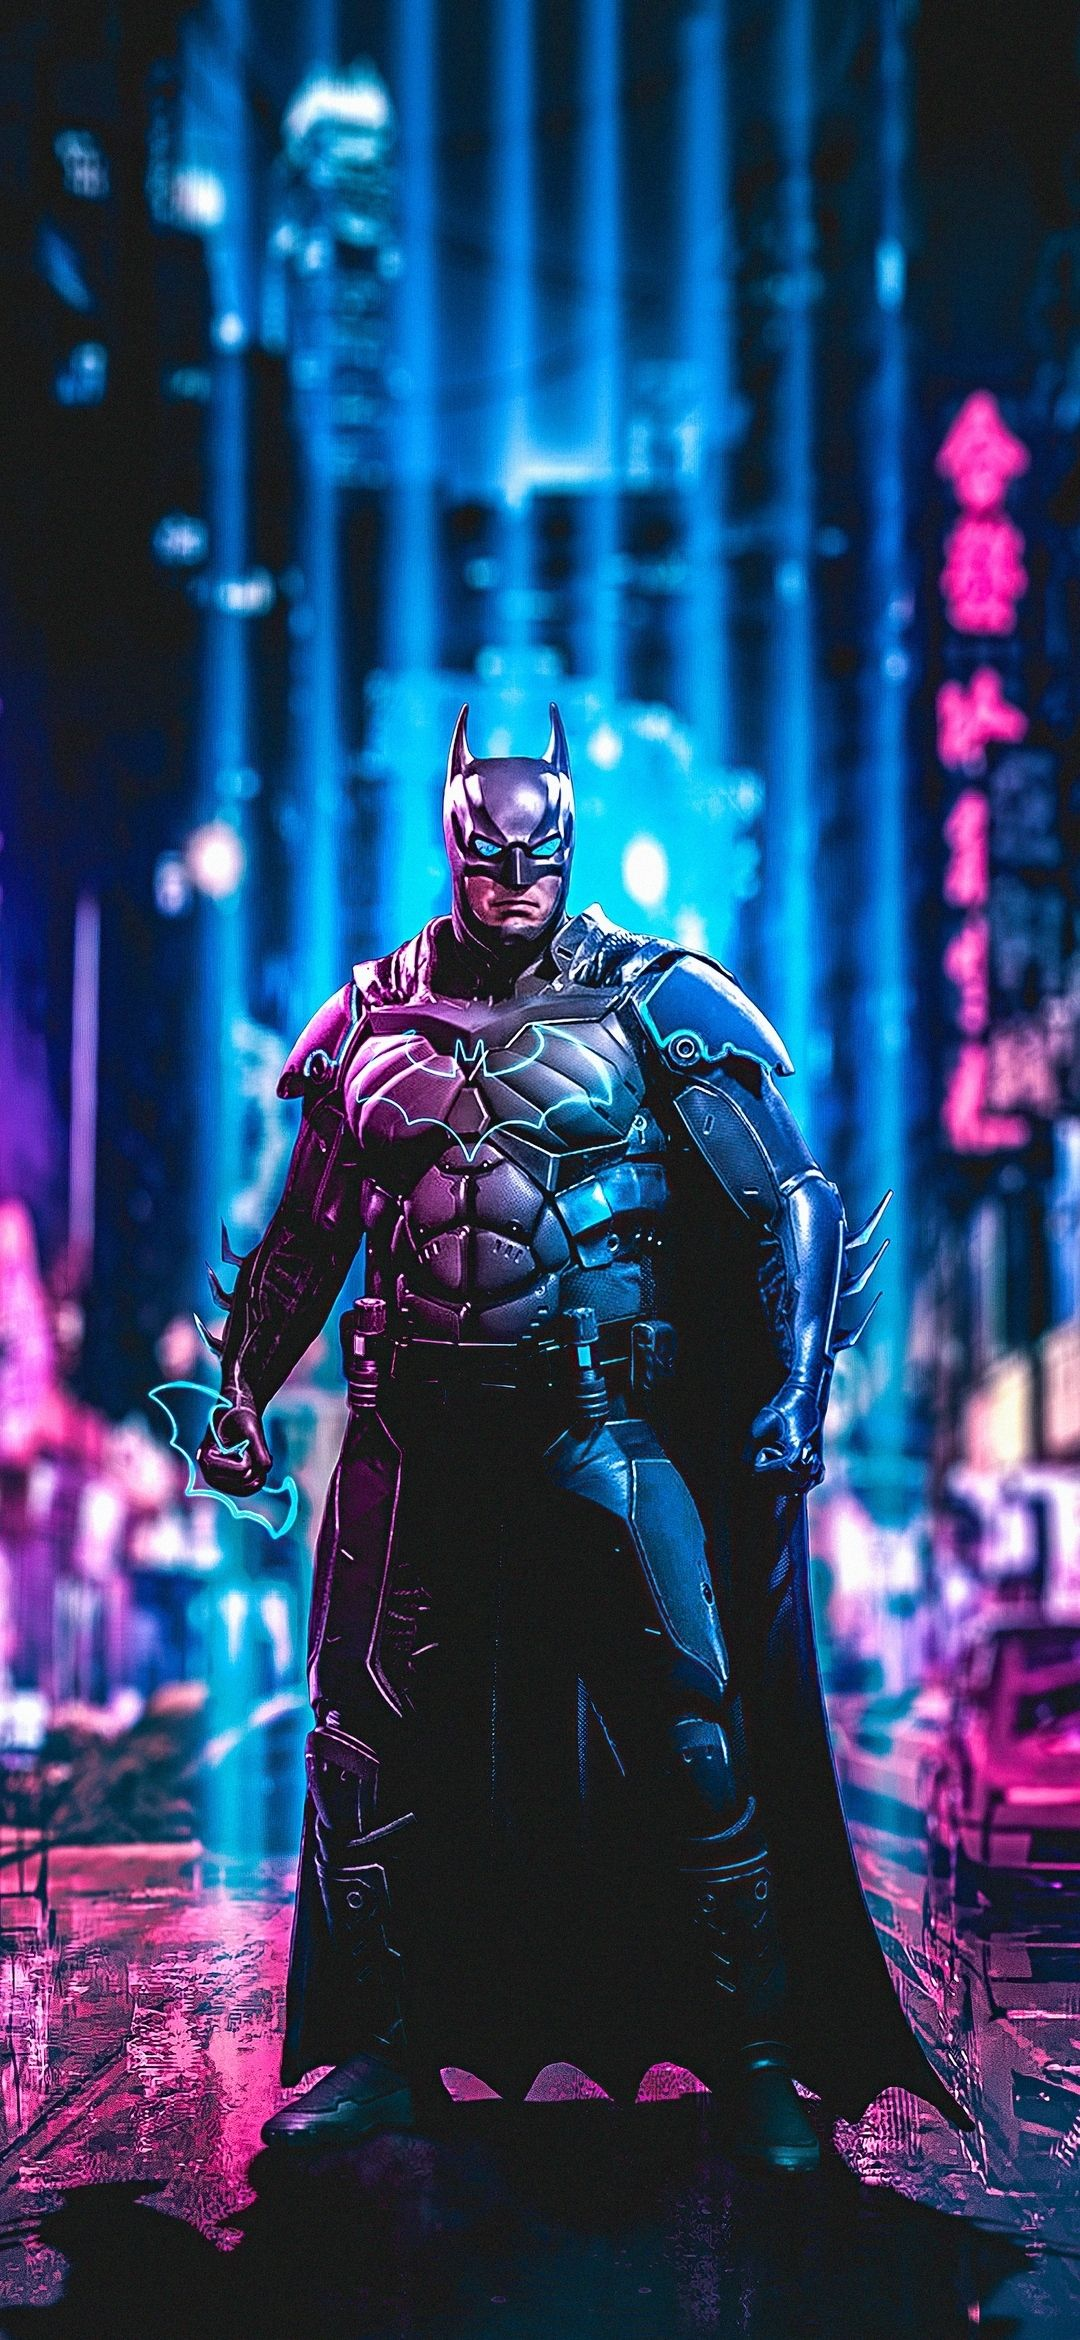 Apple Iphone Wallpaper Batman Batman Artwork Batman Wallpaper